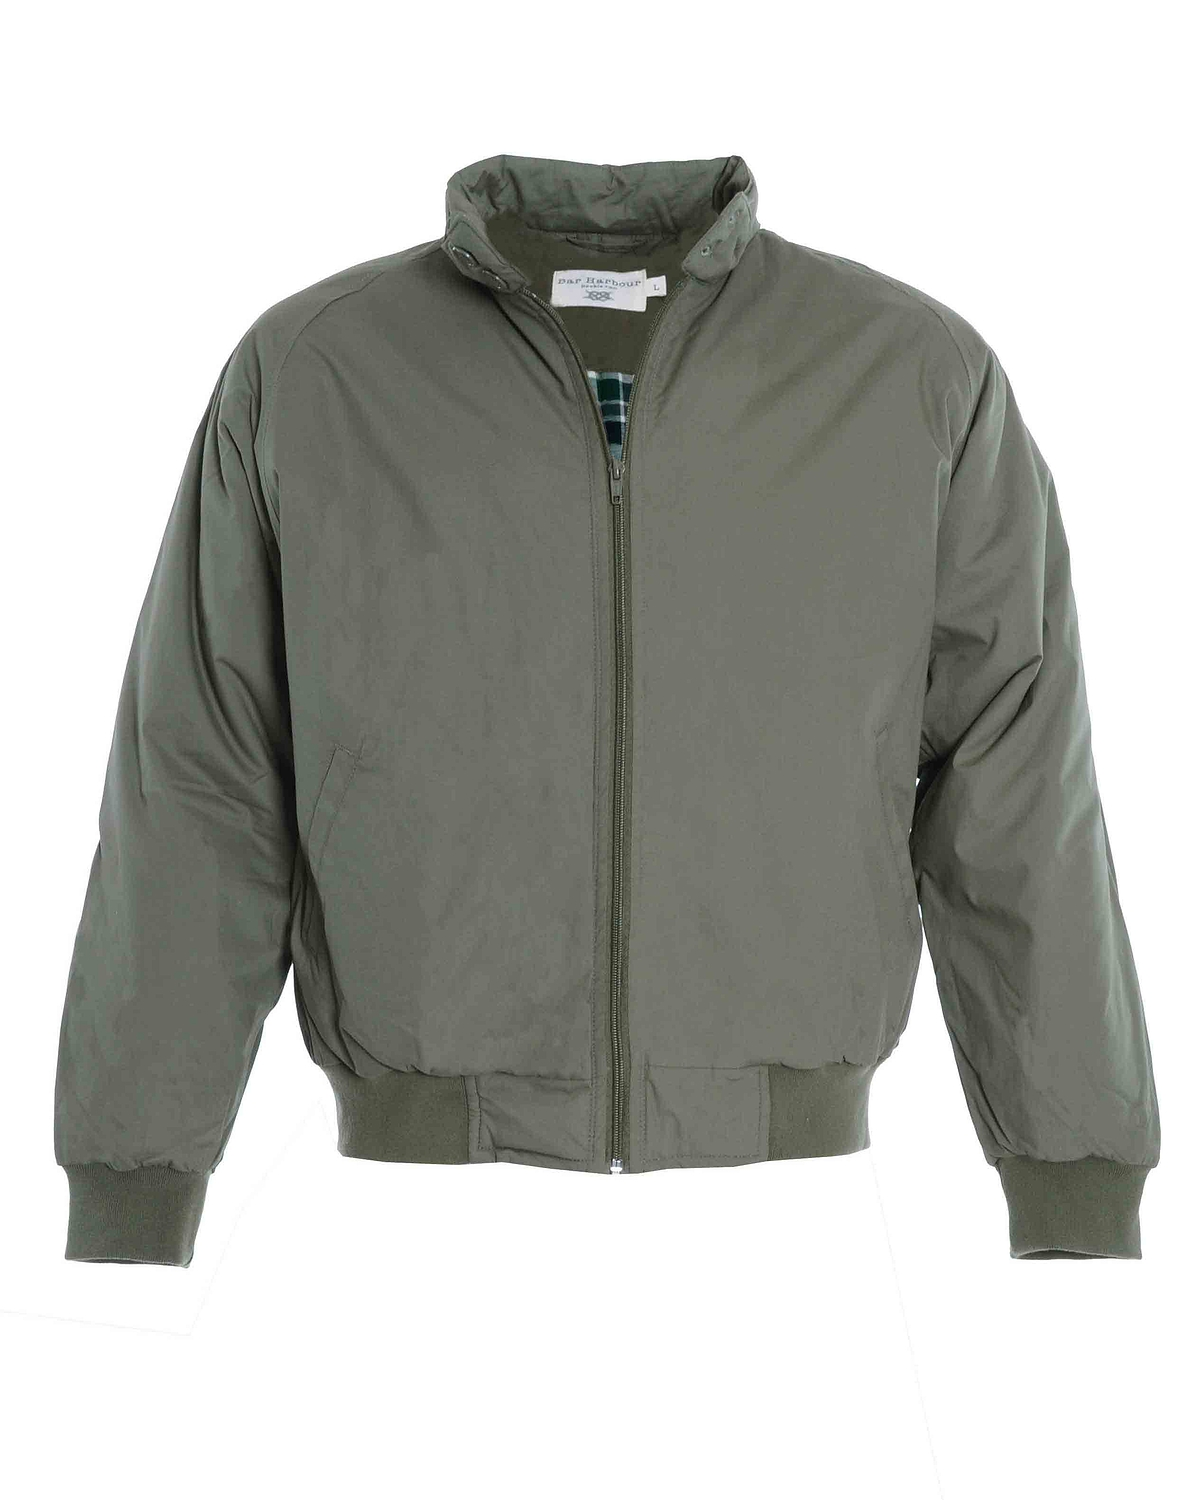 Bar Harbour Water Resistant Winter Padded Jacket - Olive